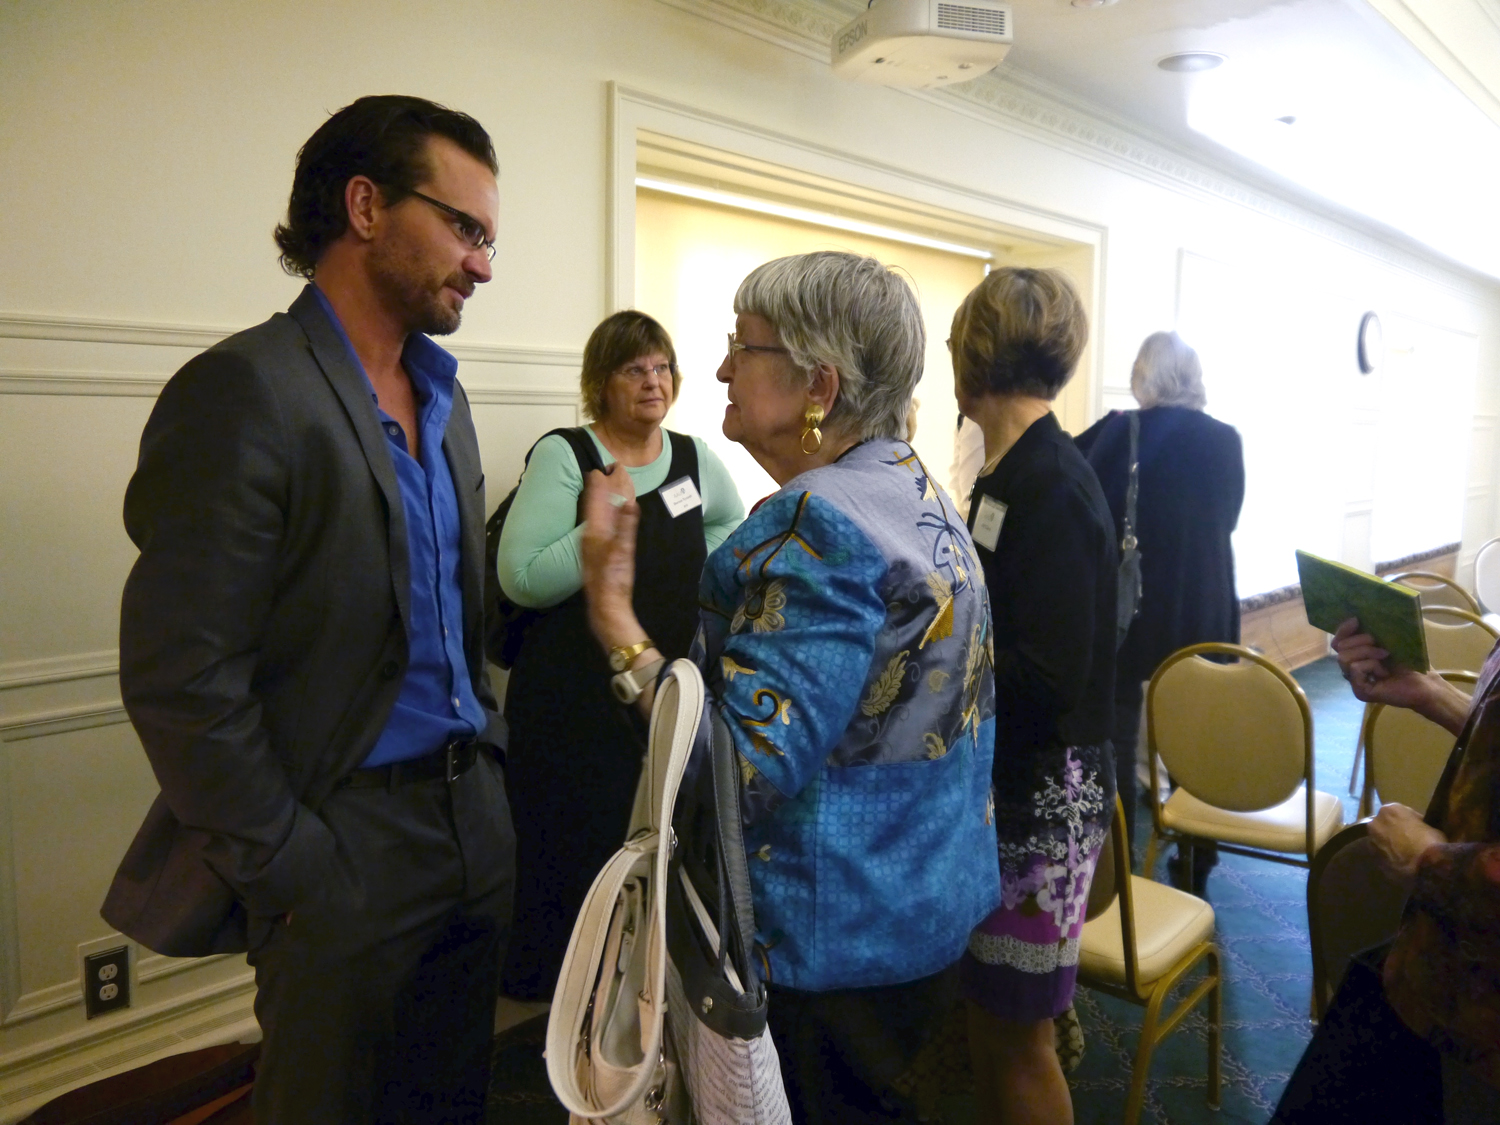 Aaron speaking with attendees after his keynote